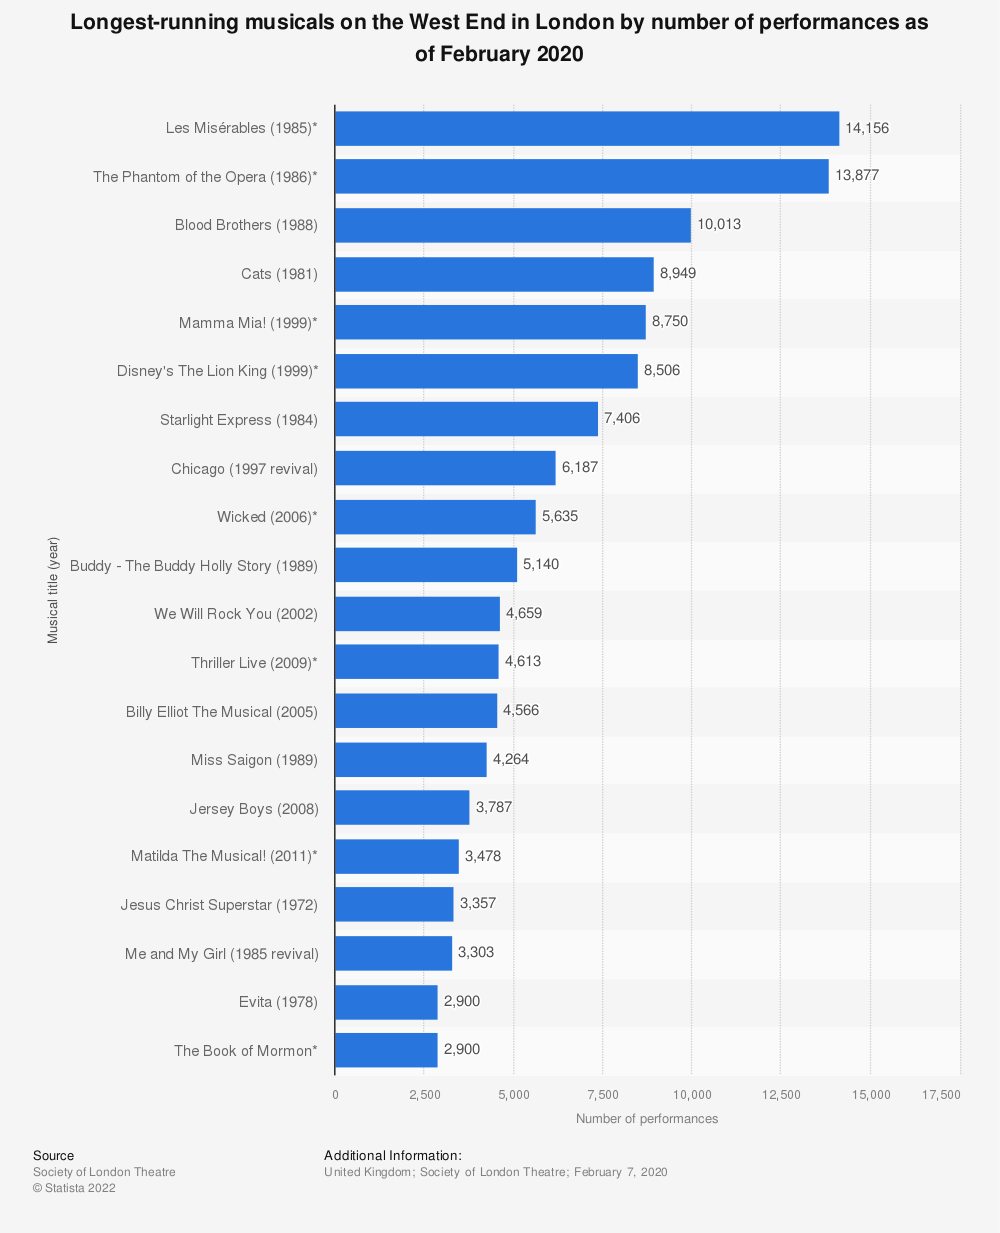 Statistic: Longest-running musicals on the West End in London by number of performances as of February 2020 | Statista